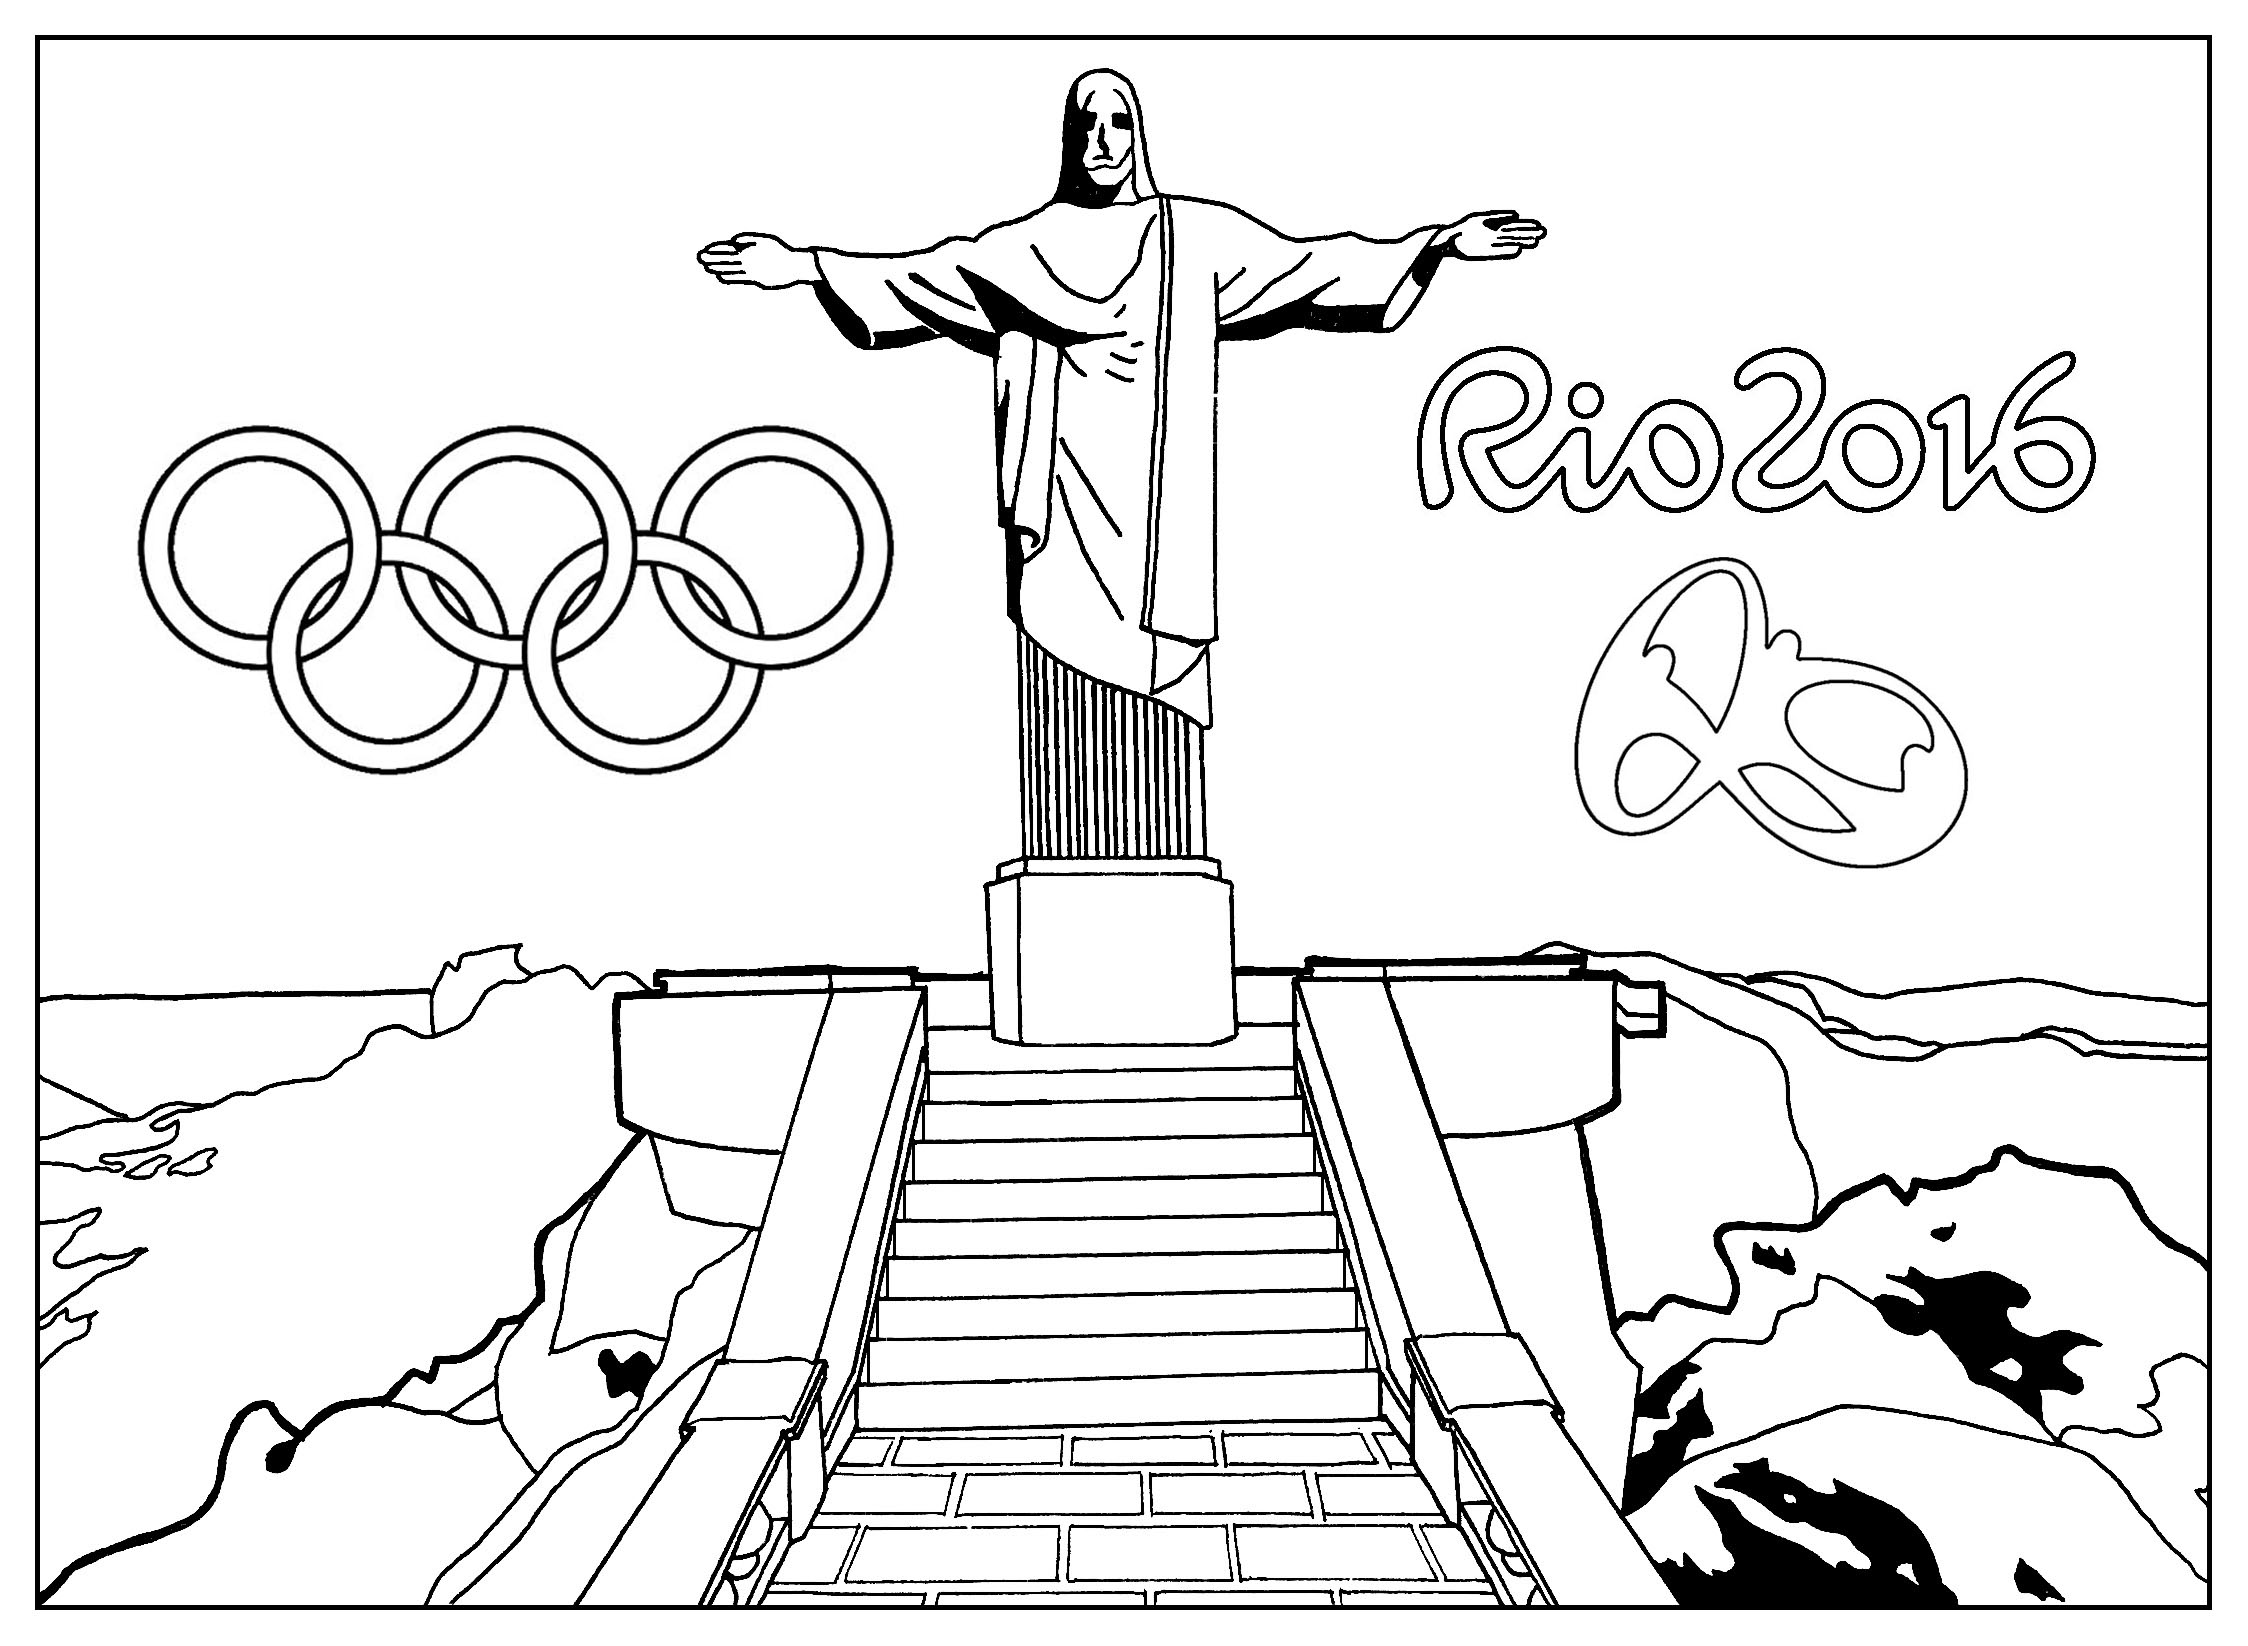 olympics symbol coloring pages - photo#35